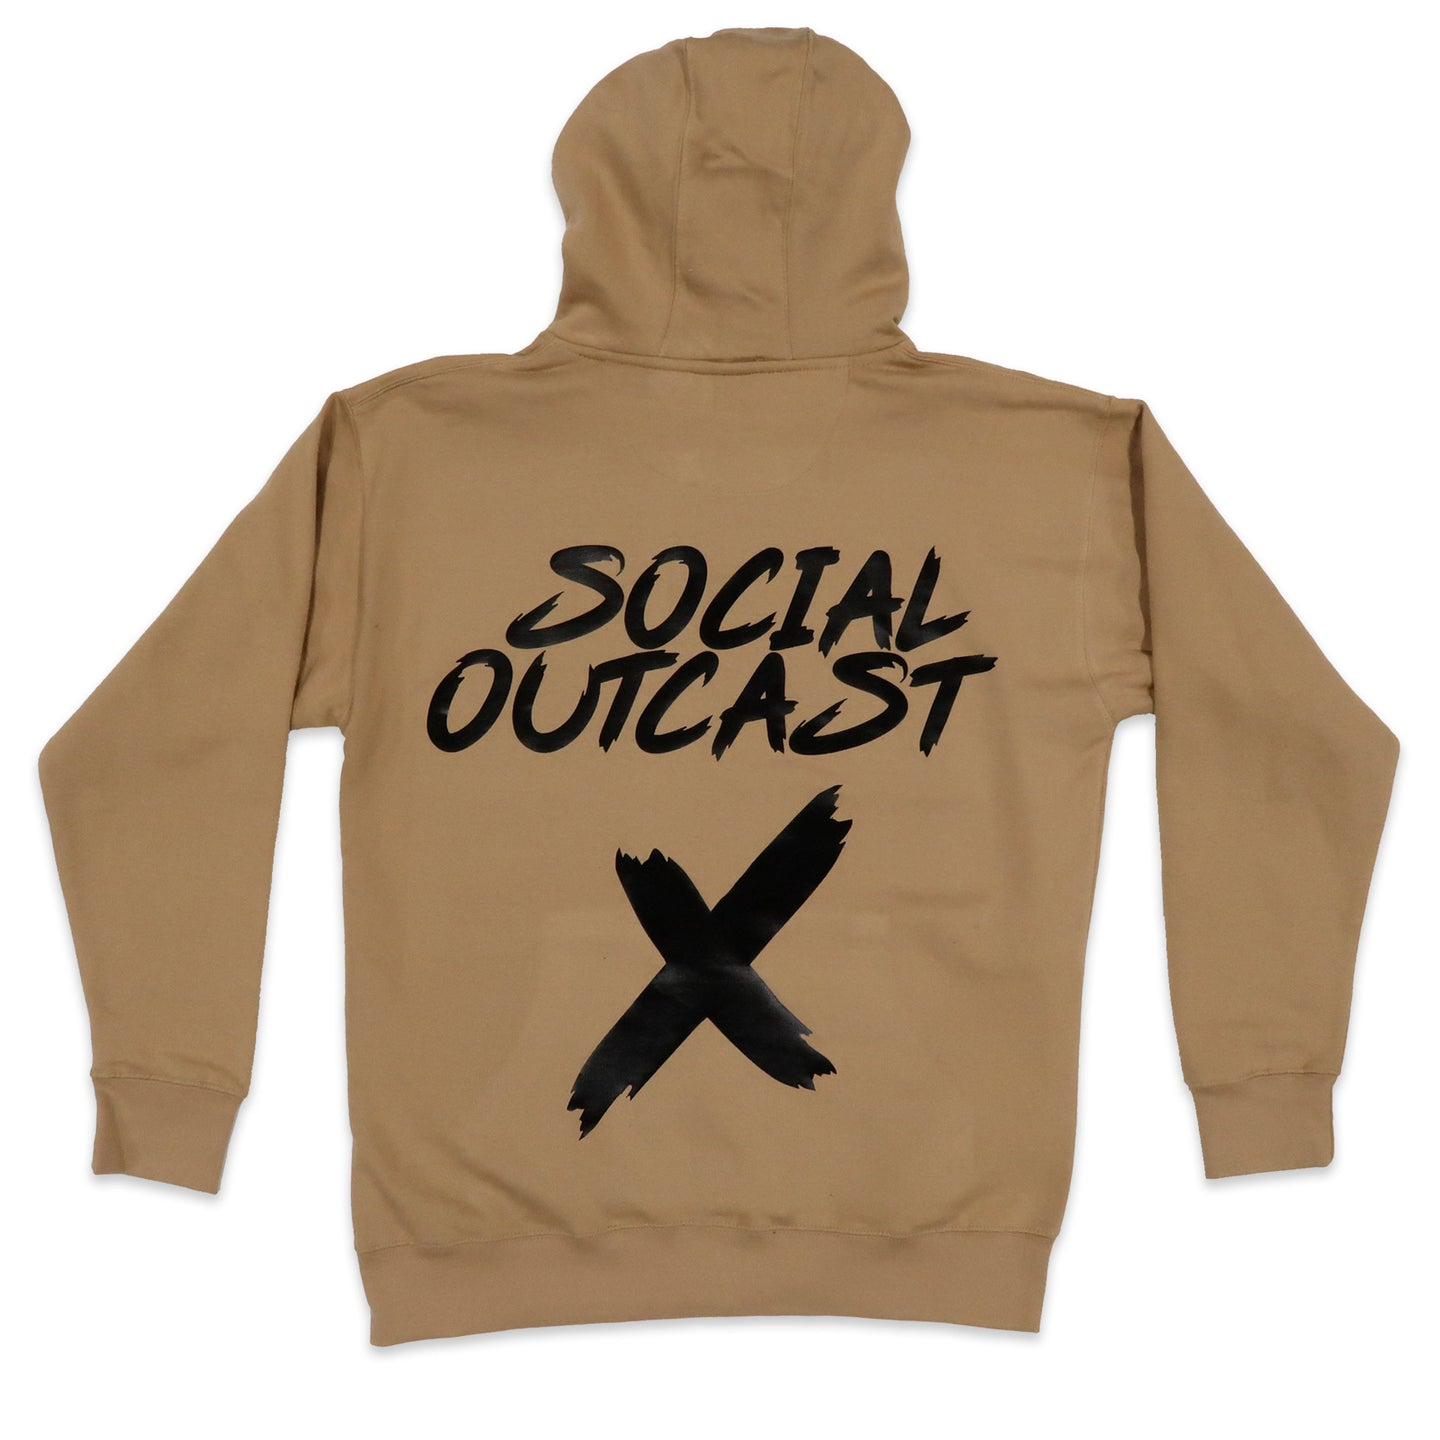 Social Outcast Hoodie in Khaki and Black